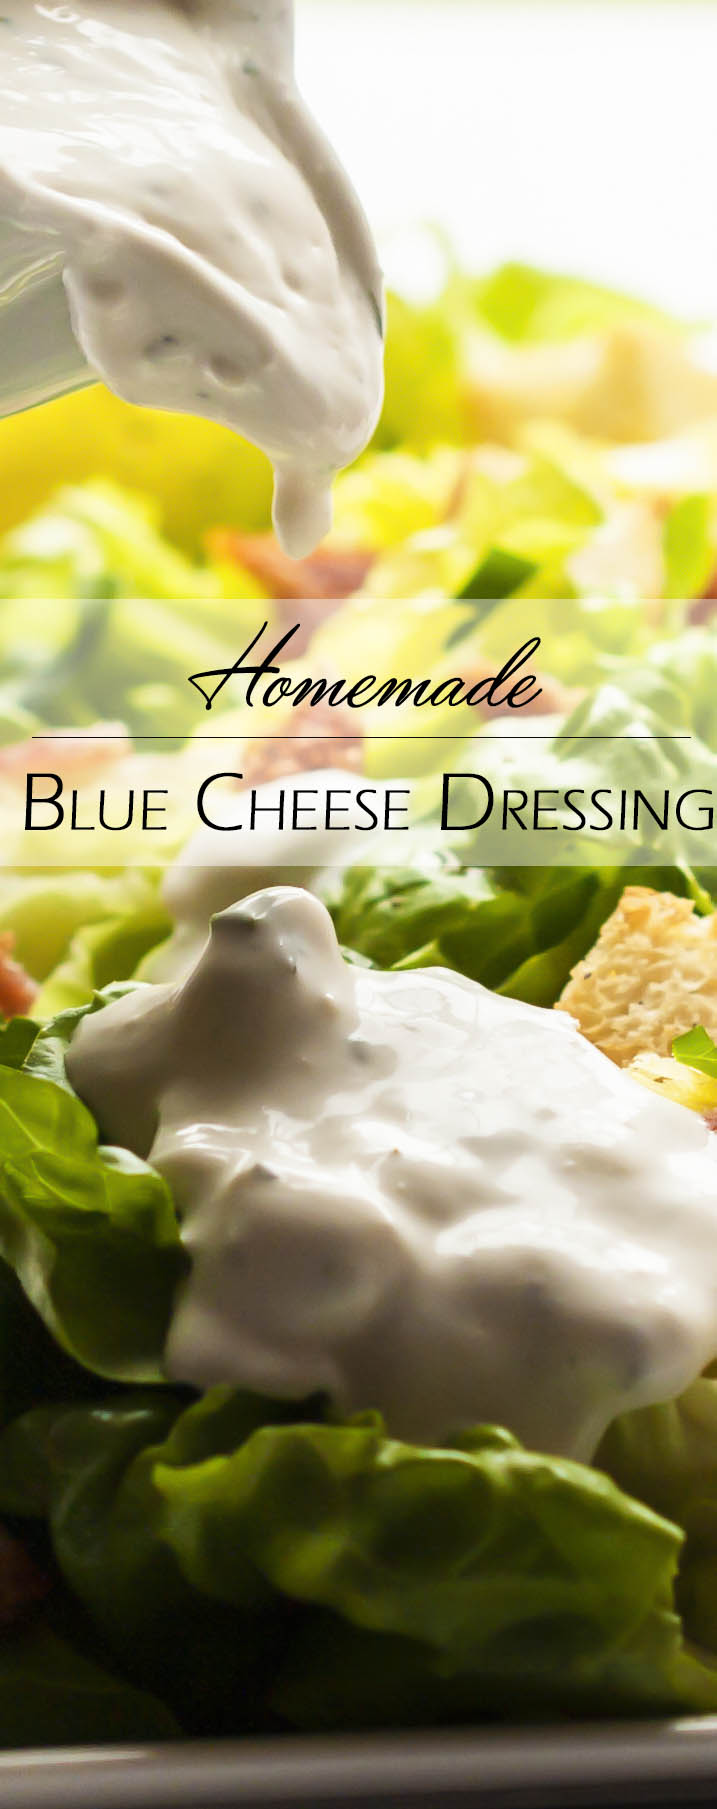 Blue Cheese Dressing - 5 minutes and 5 ingredients are all you need to make a blue cheese dressing so good you won't want to go back to store bought. | justalittlebitofbacon.com